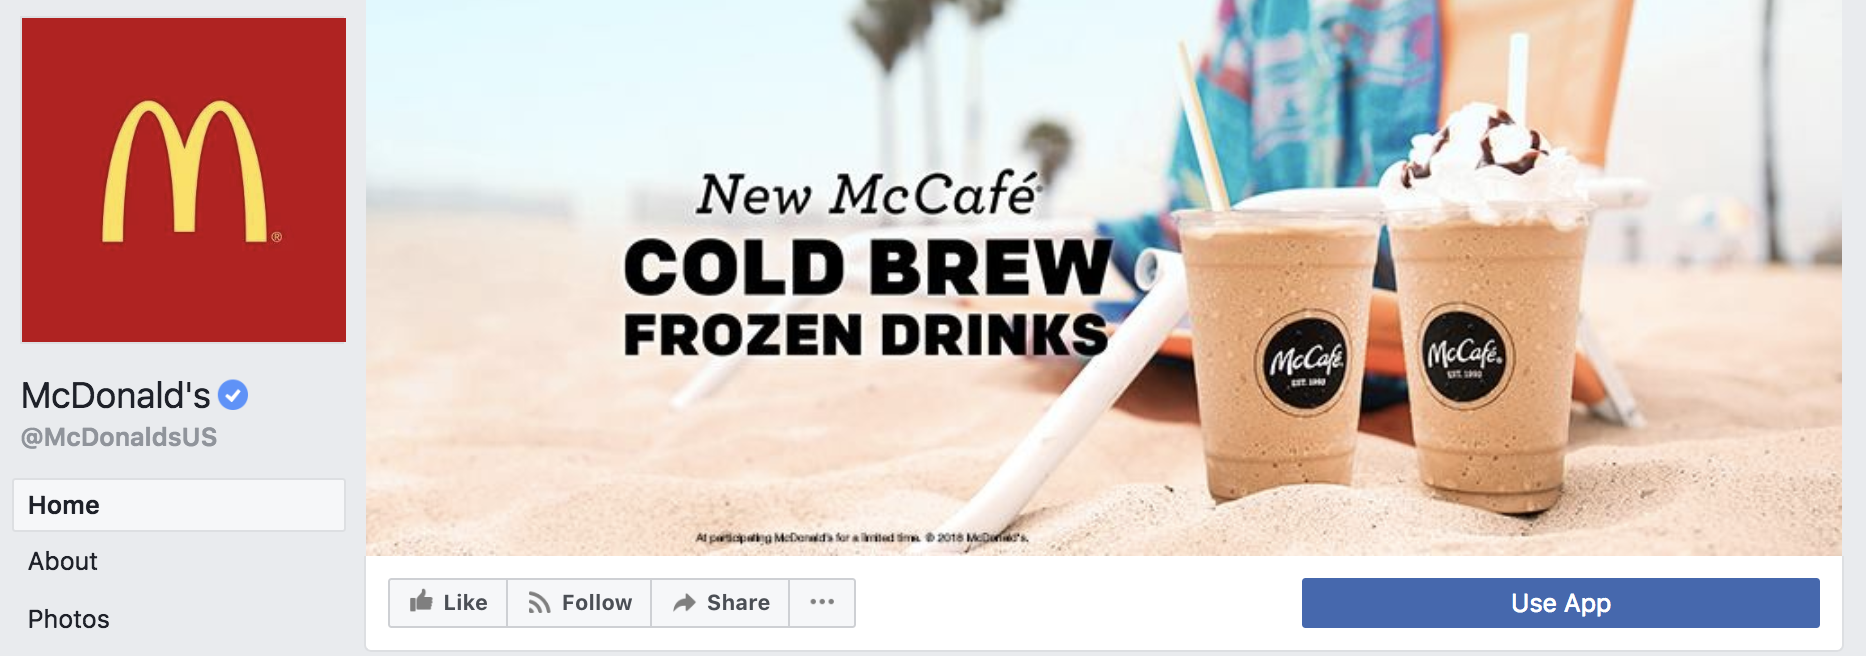 McDonald's cover photo